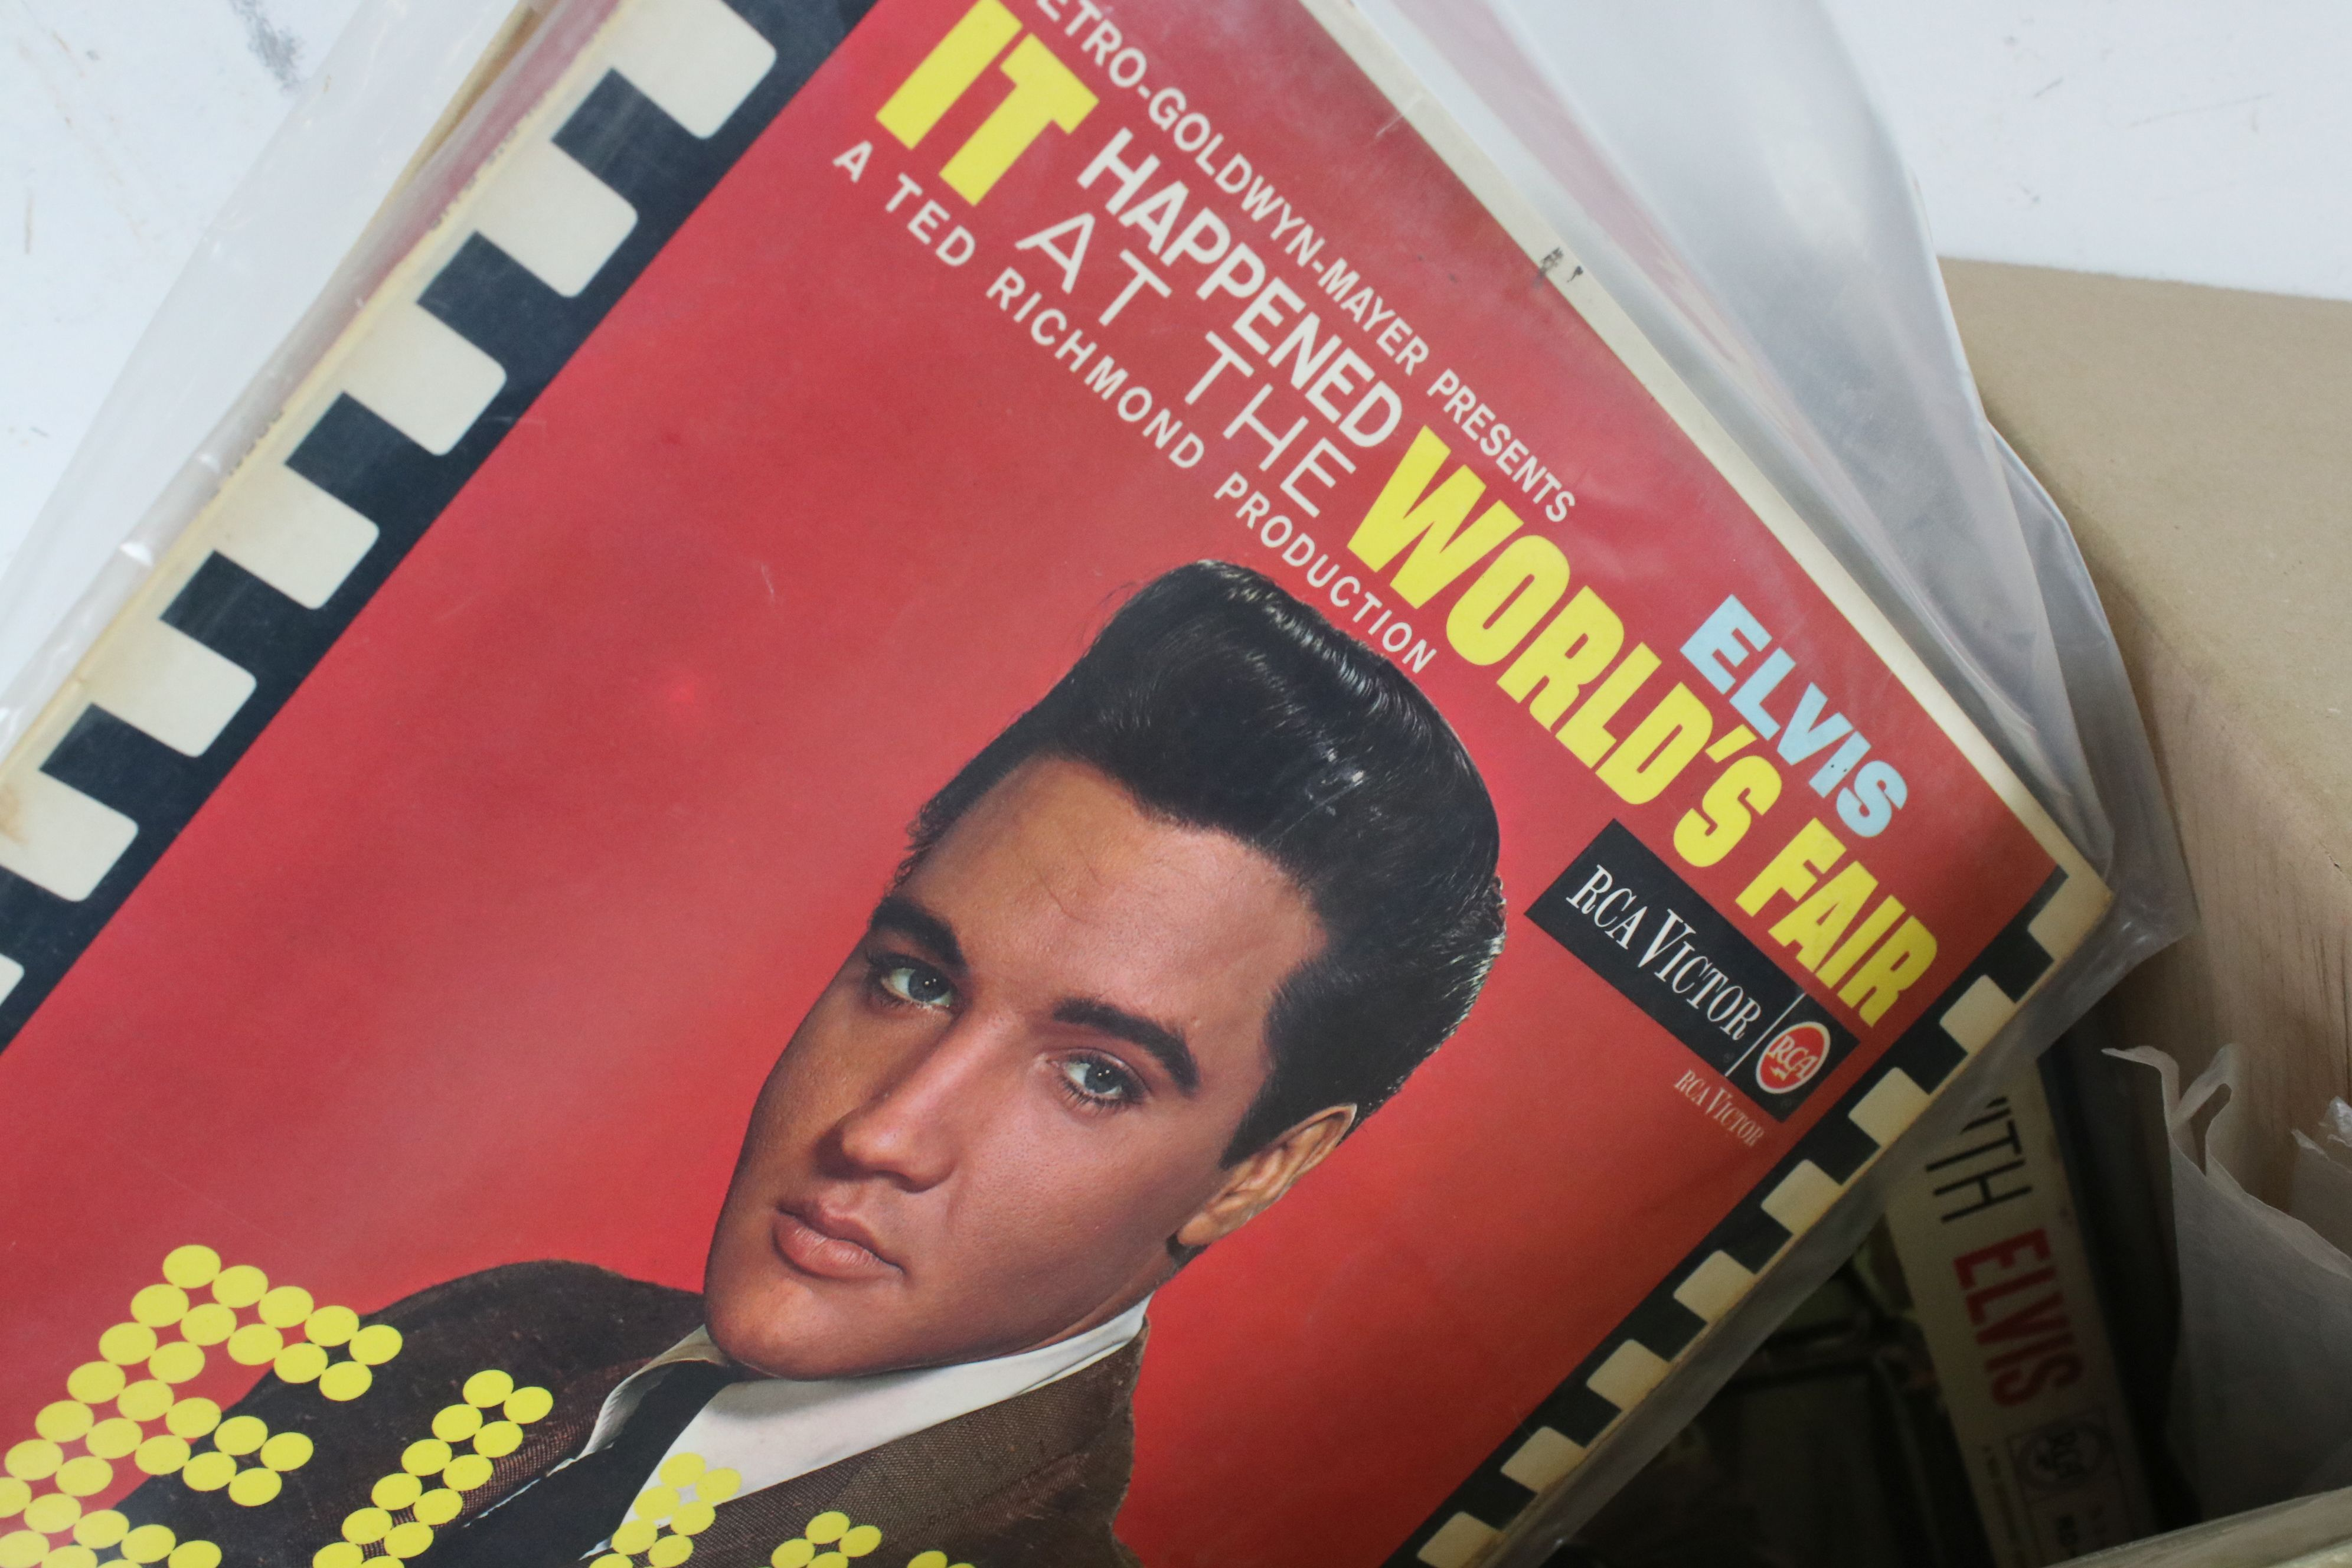 Vinyl - Collection of approx 50 Elvis LP's spanning his career. Condition varies but overall VG+ - Image 5 of 7